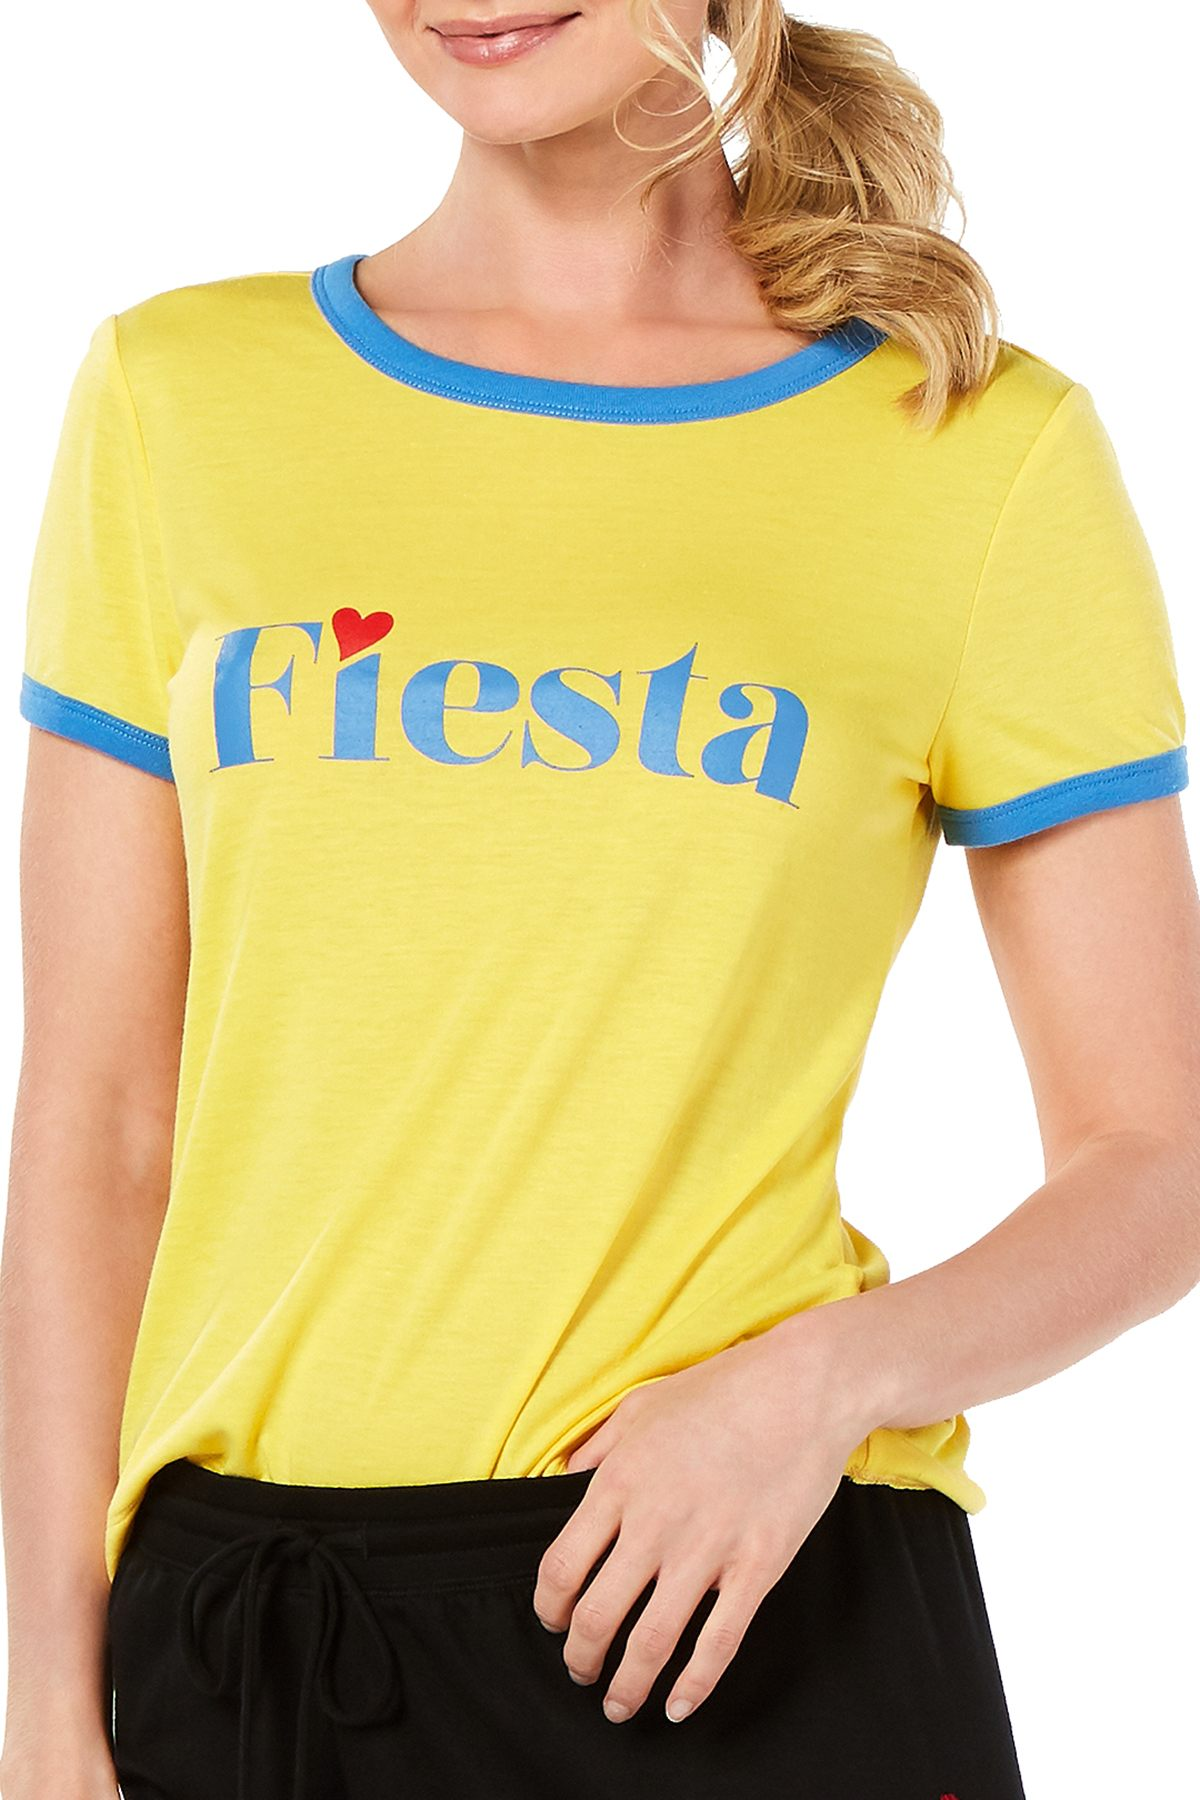 Jenni Ringer T-Shirt in Fiesta Yellow